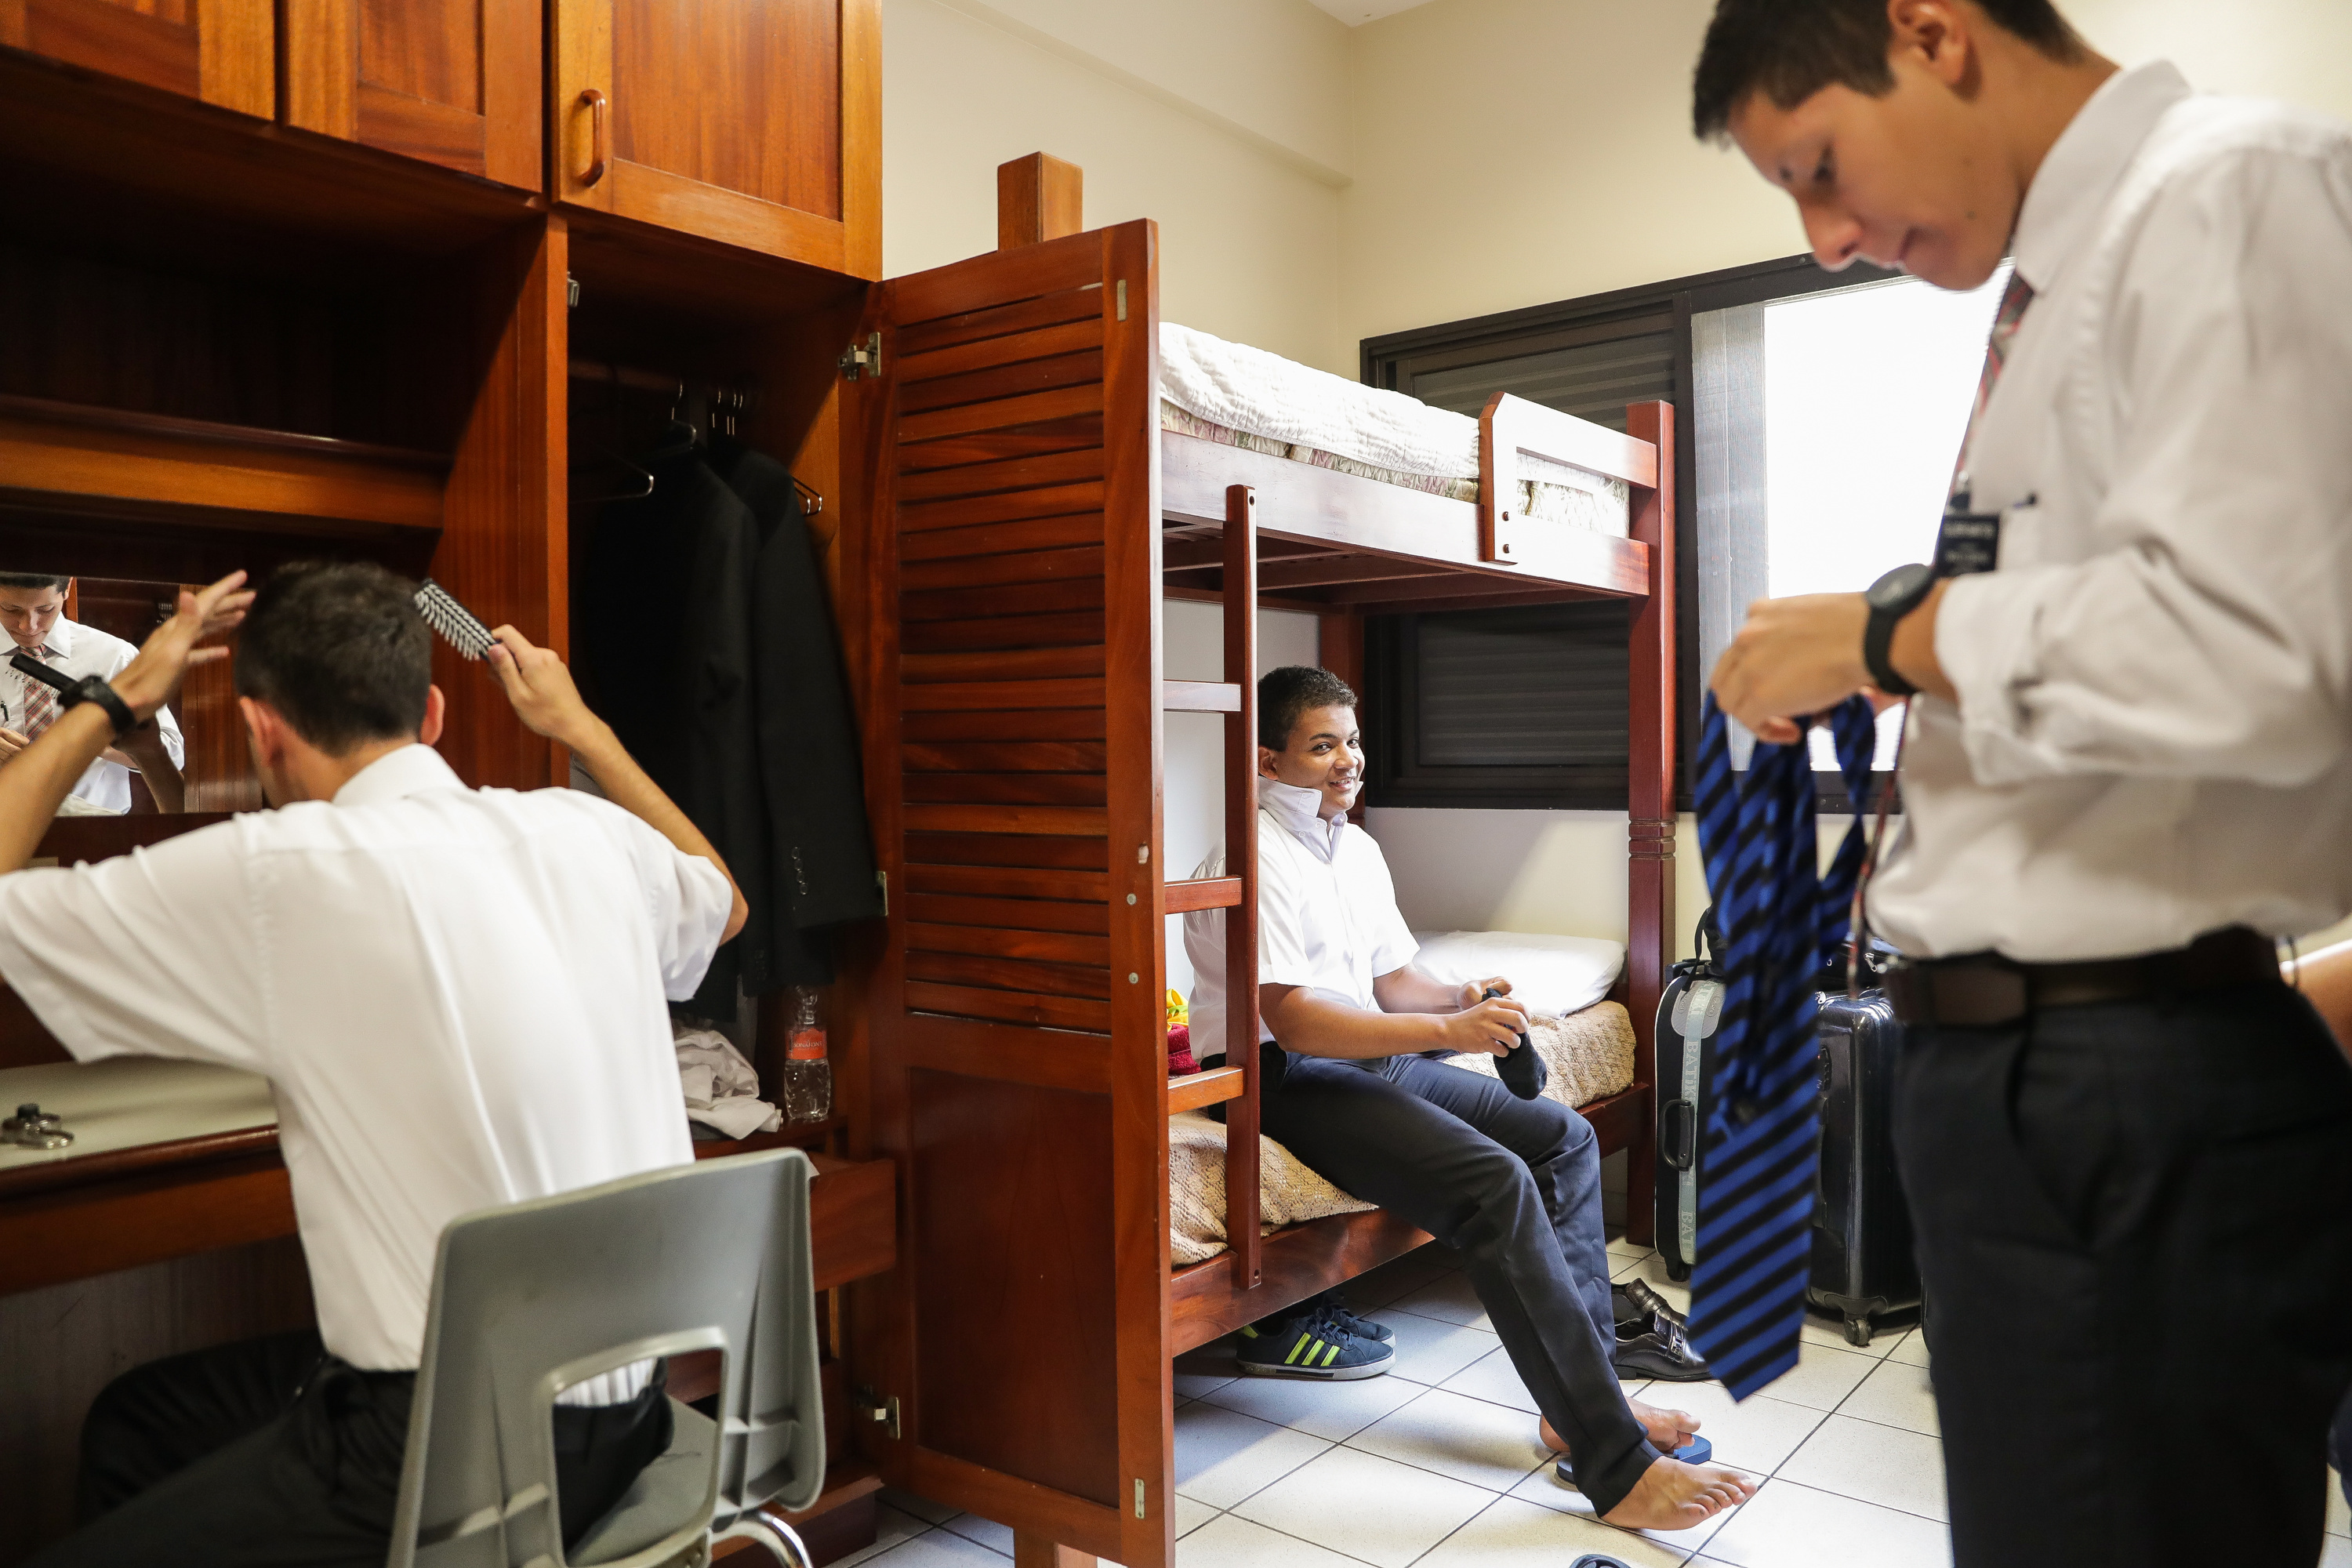 Elder Nefi Moraes, Elder Carlos Bastos and Elder Wesley Santos get dressed in their residence room at the Brazil Missionary Training Center in Sao Paulo on Thursday, May 24, 2018.